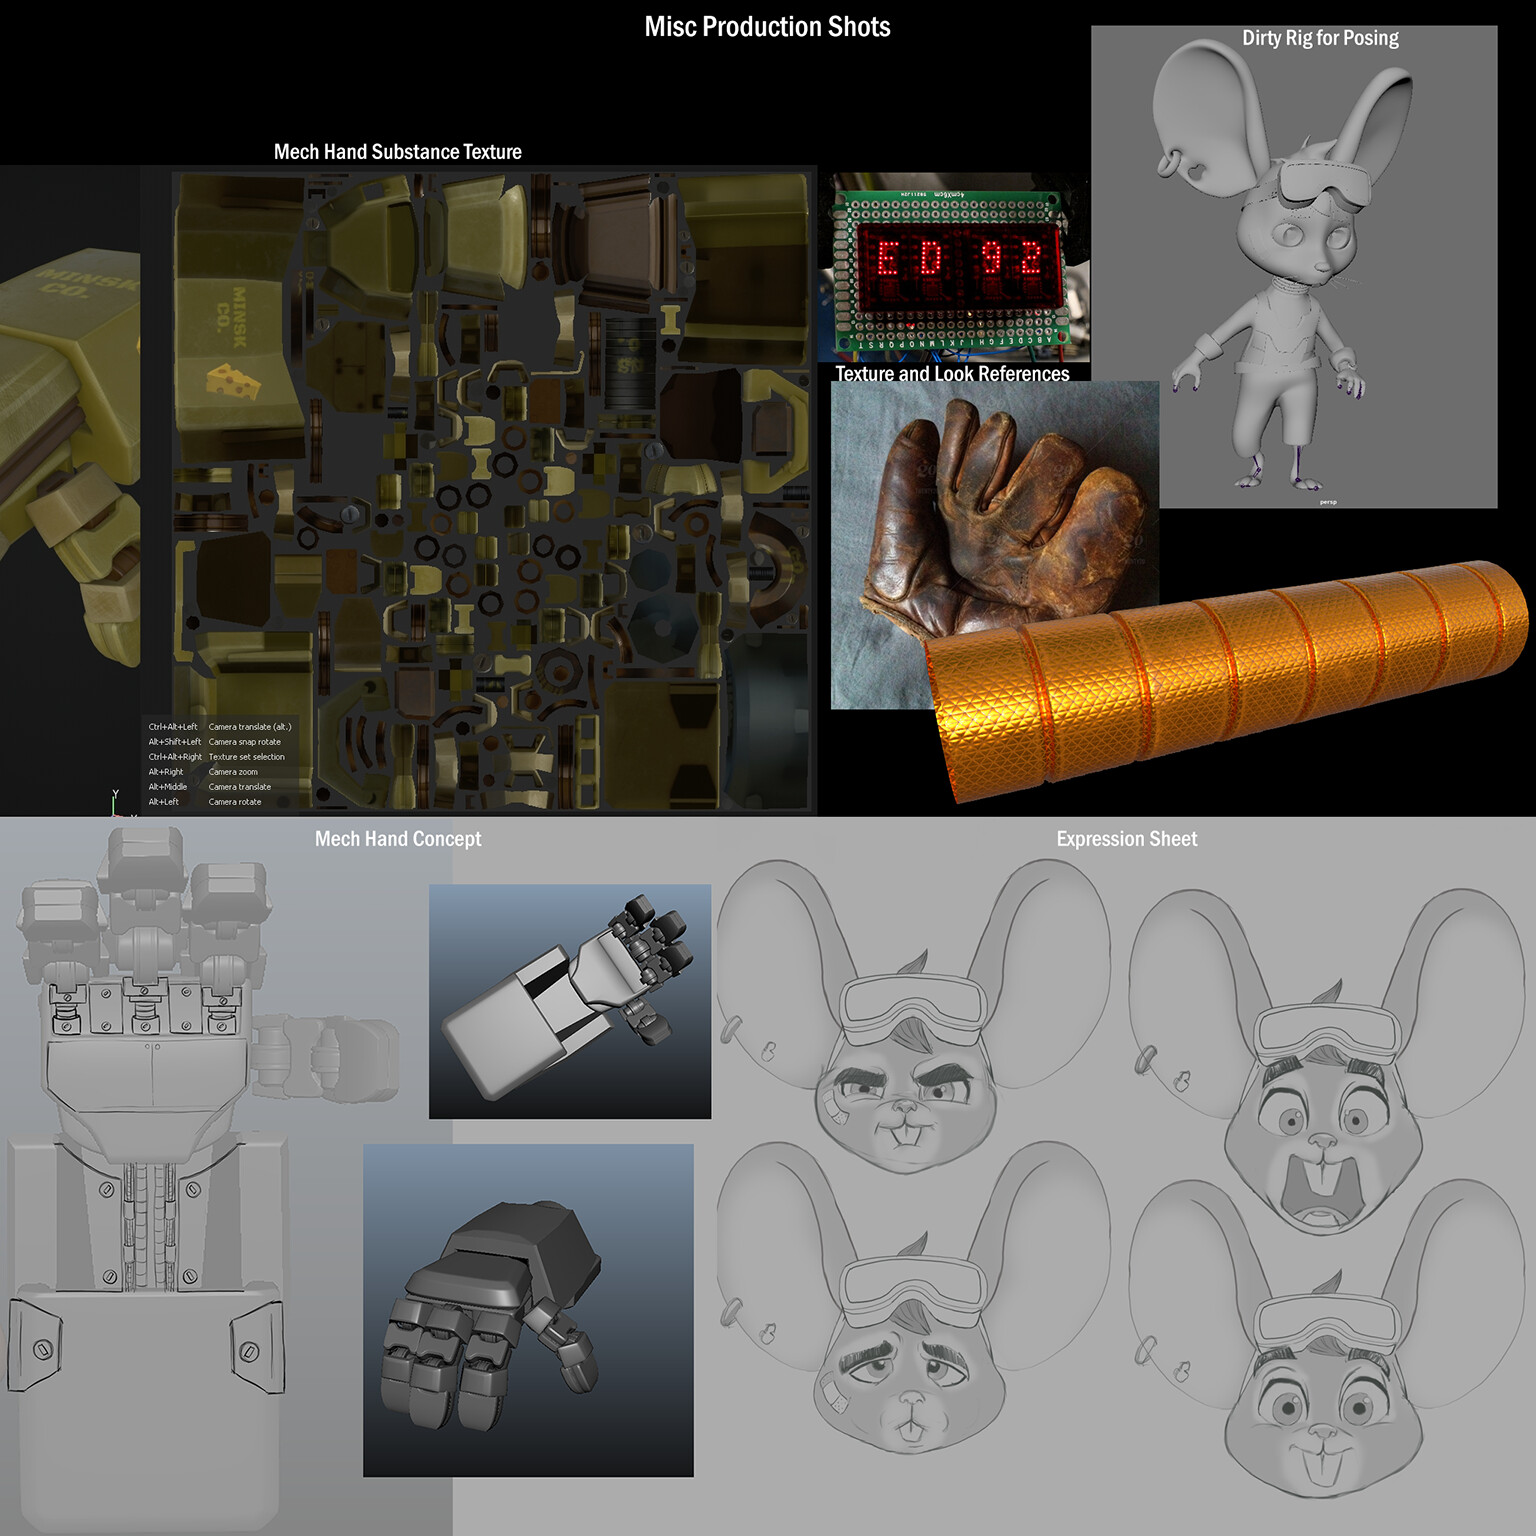 Various concepts, and productions bits.